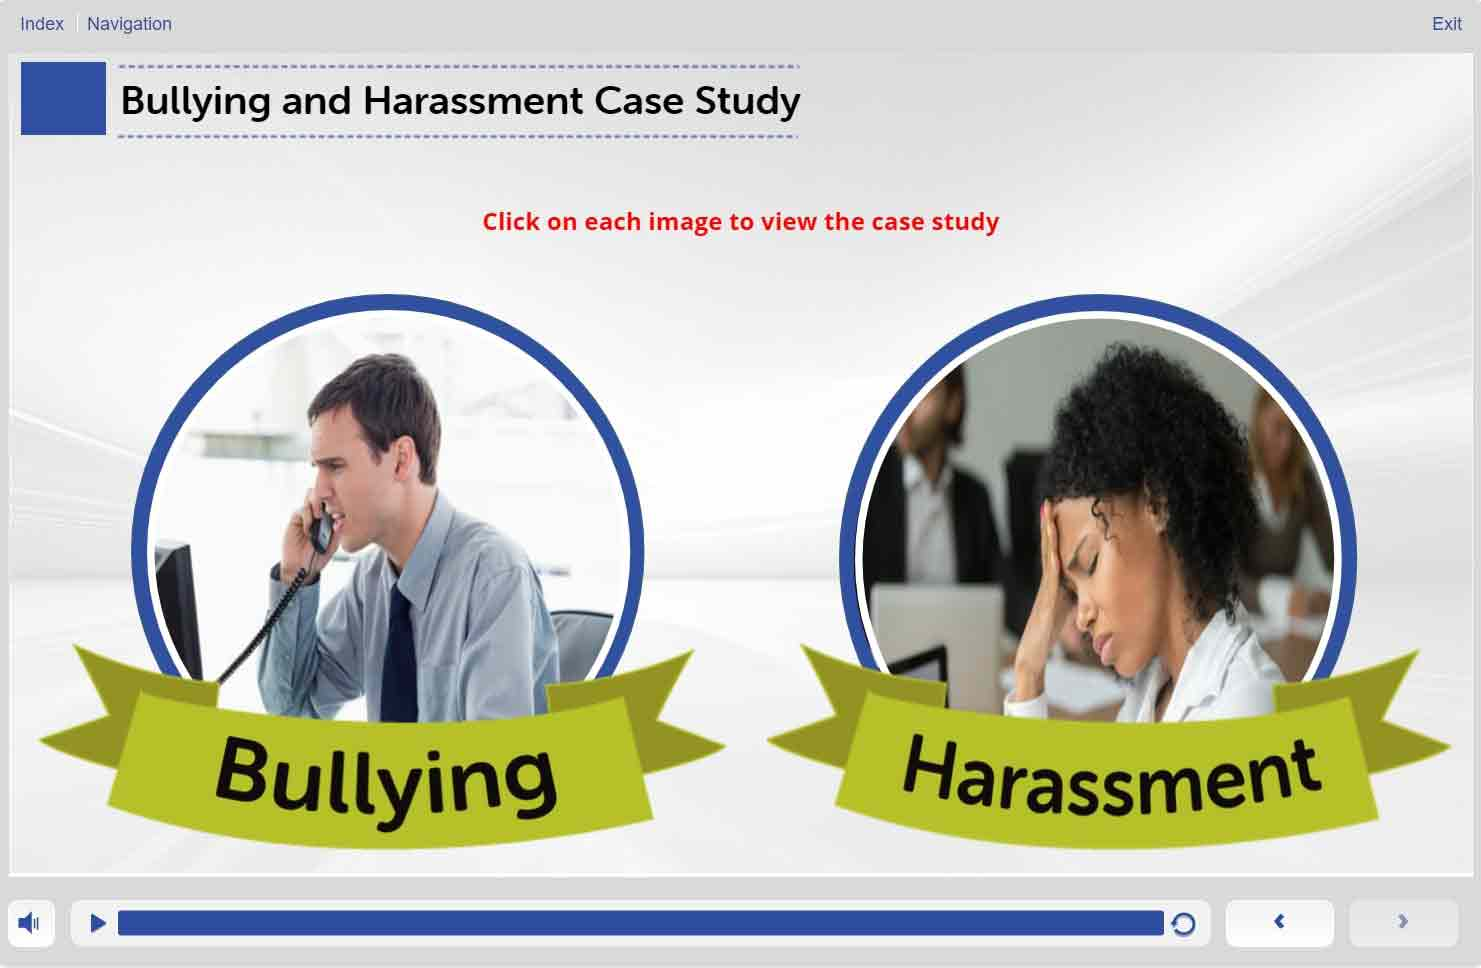 Dealing with Bullying and Harassment – Training in Bullying and Harassment